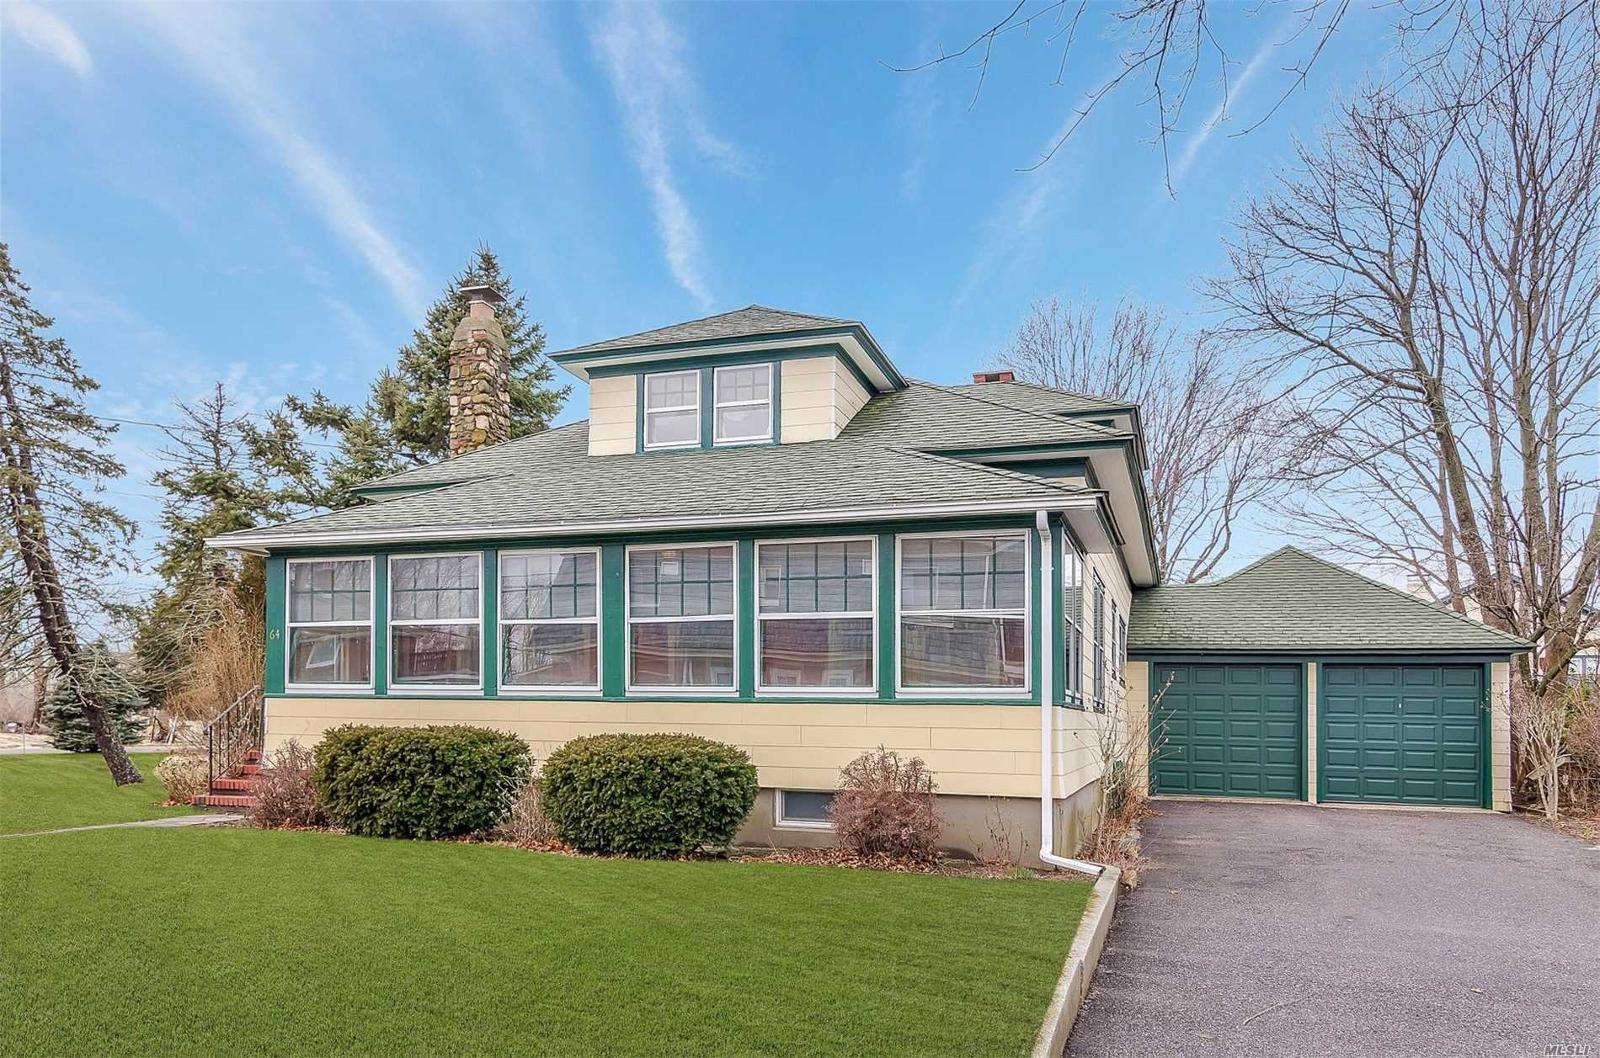 south jamesport single guys This single-family home located at 16 seacove ct, south jamesport ny, 11970 is currently for sale and has been listed on trulia for 107 days this property is listed by mls of long island for $749,999 16 seacove ct has 3 beds and 4 baths.